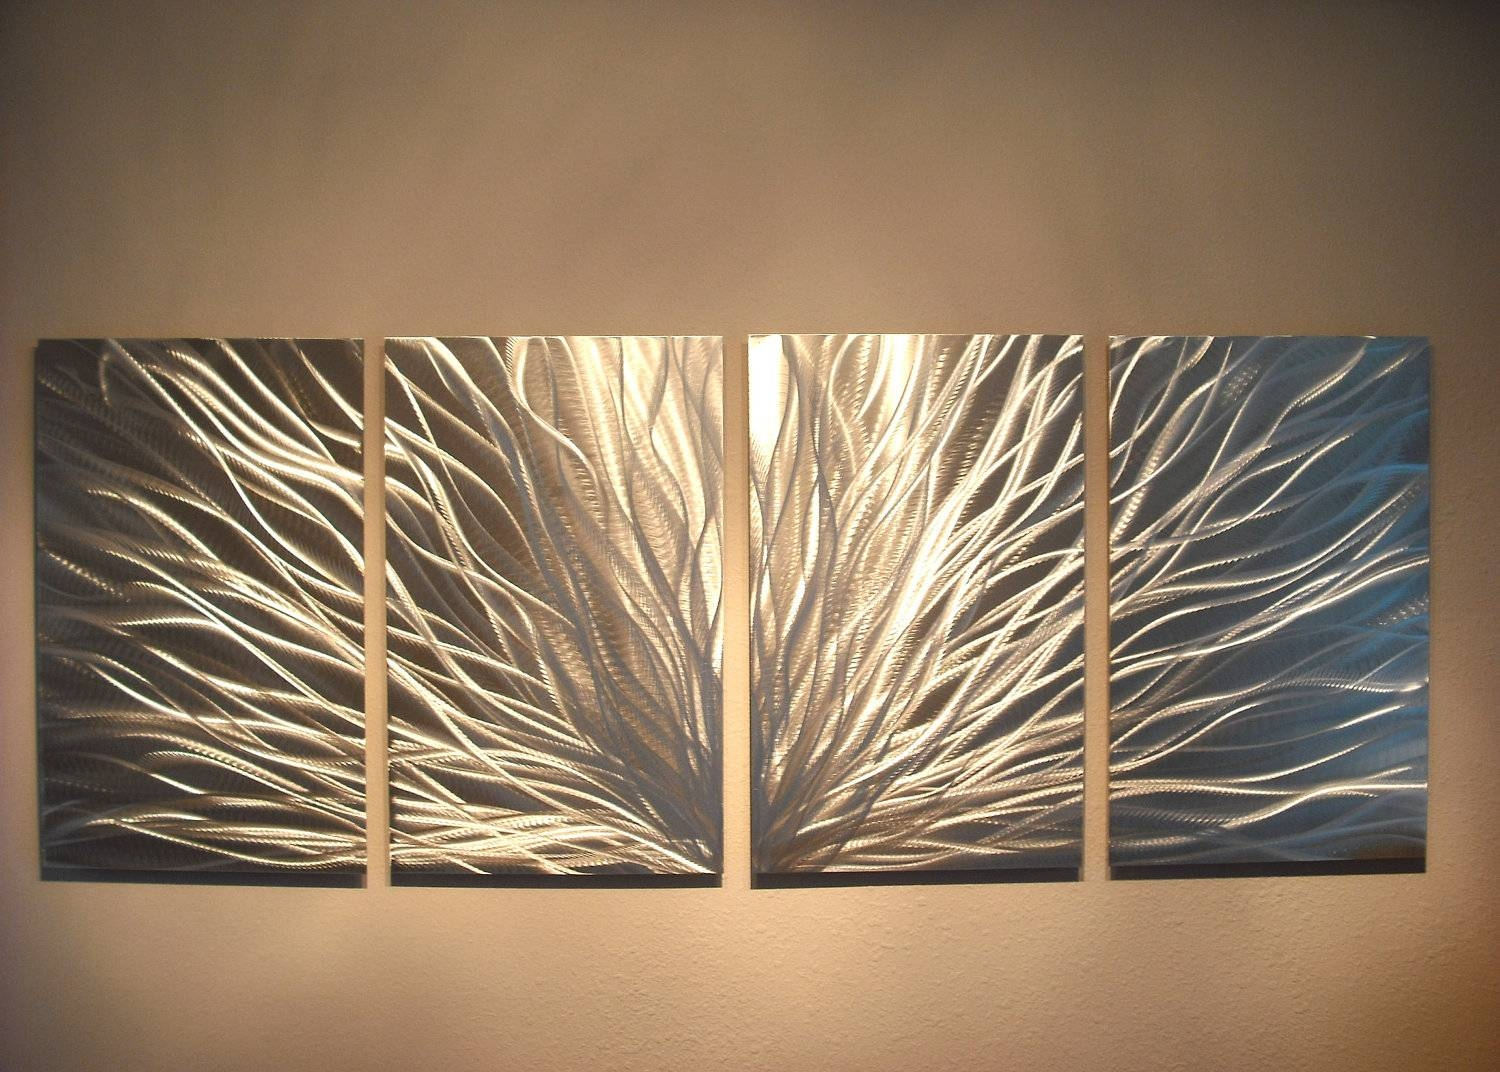 Radiance – Abstract Metal Wall Art Contemporary Modern Decor With Current Large Abstract Metal Wall Art (View 2 of 20)